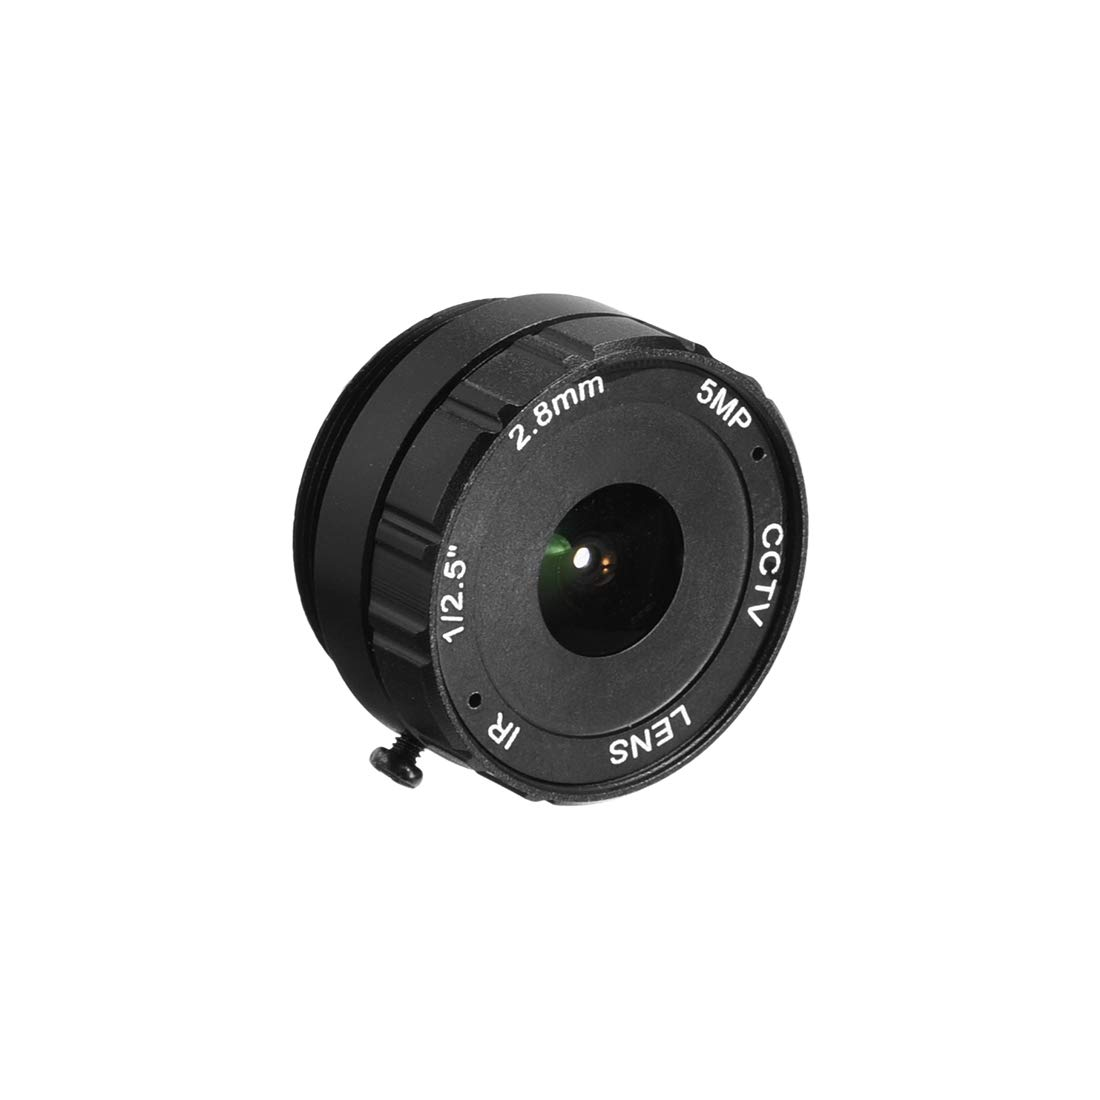 uxcell 2.8mm 5MP F1.2 FPV CCTV Lens Wide Angle for CCD Camera by uxcell